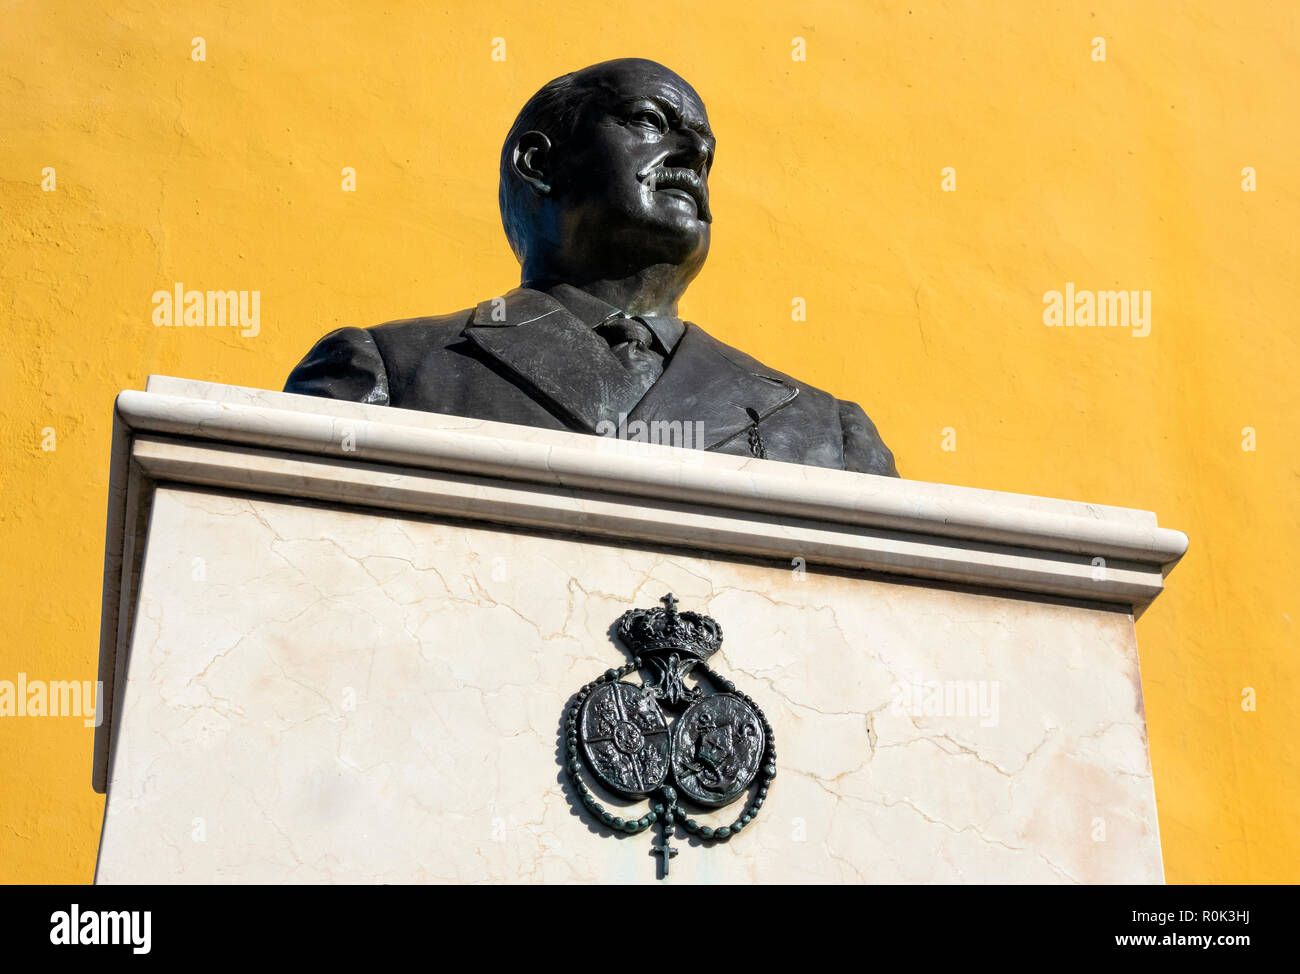 Monument for Juan Manuel Rodríguez Ojeda in Seville, Spain - Stock Image